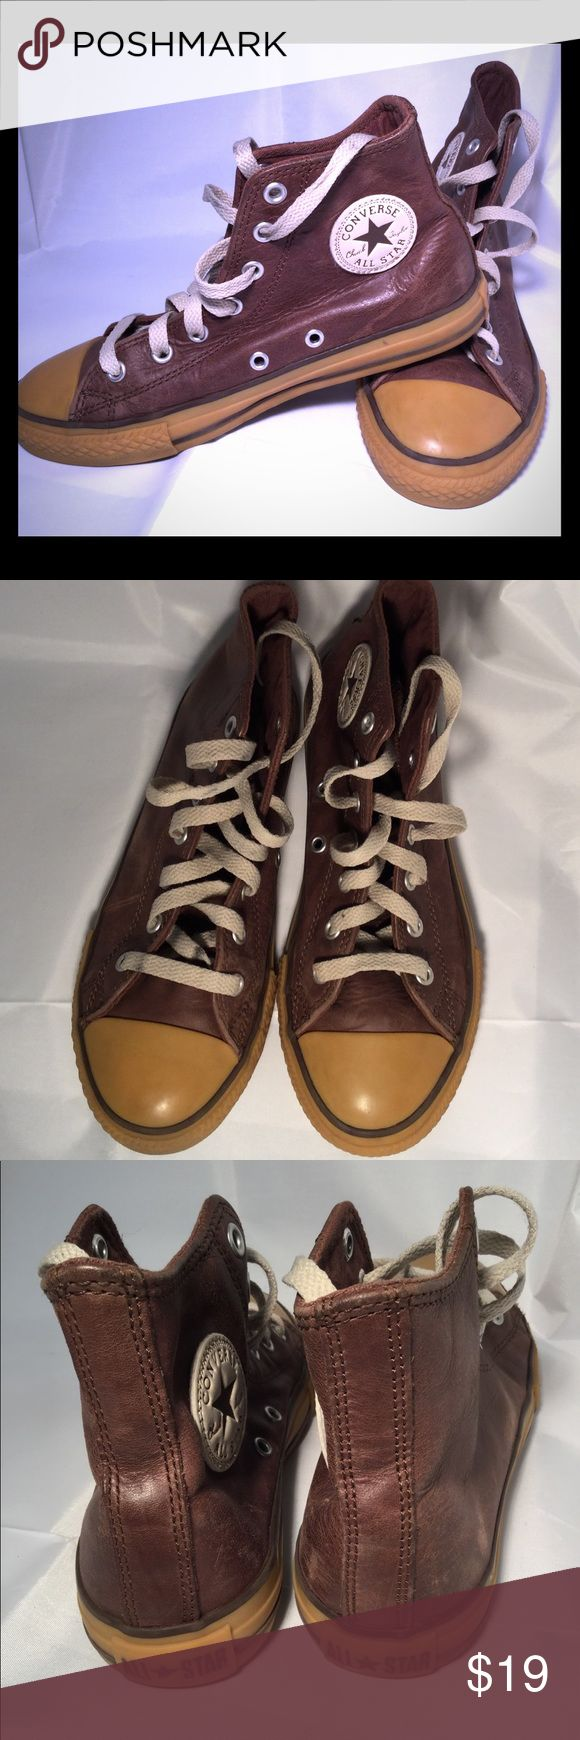 Converse Chuck Taylor All Star Brown Leather Youth brown leather Converse Chuck Taylor All Star in excellent preowned condition! Converse Shoes Sneakers